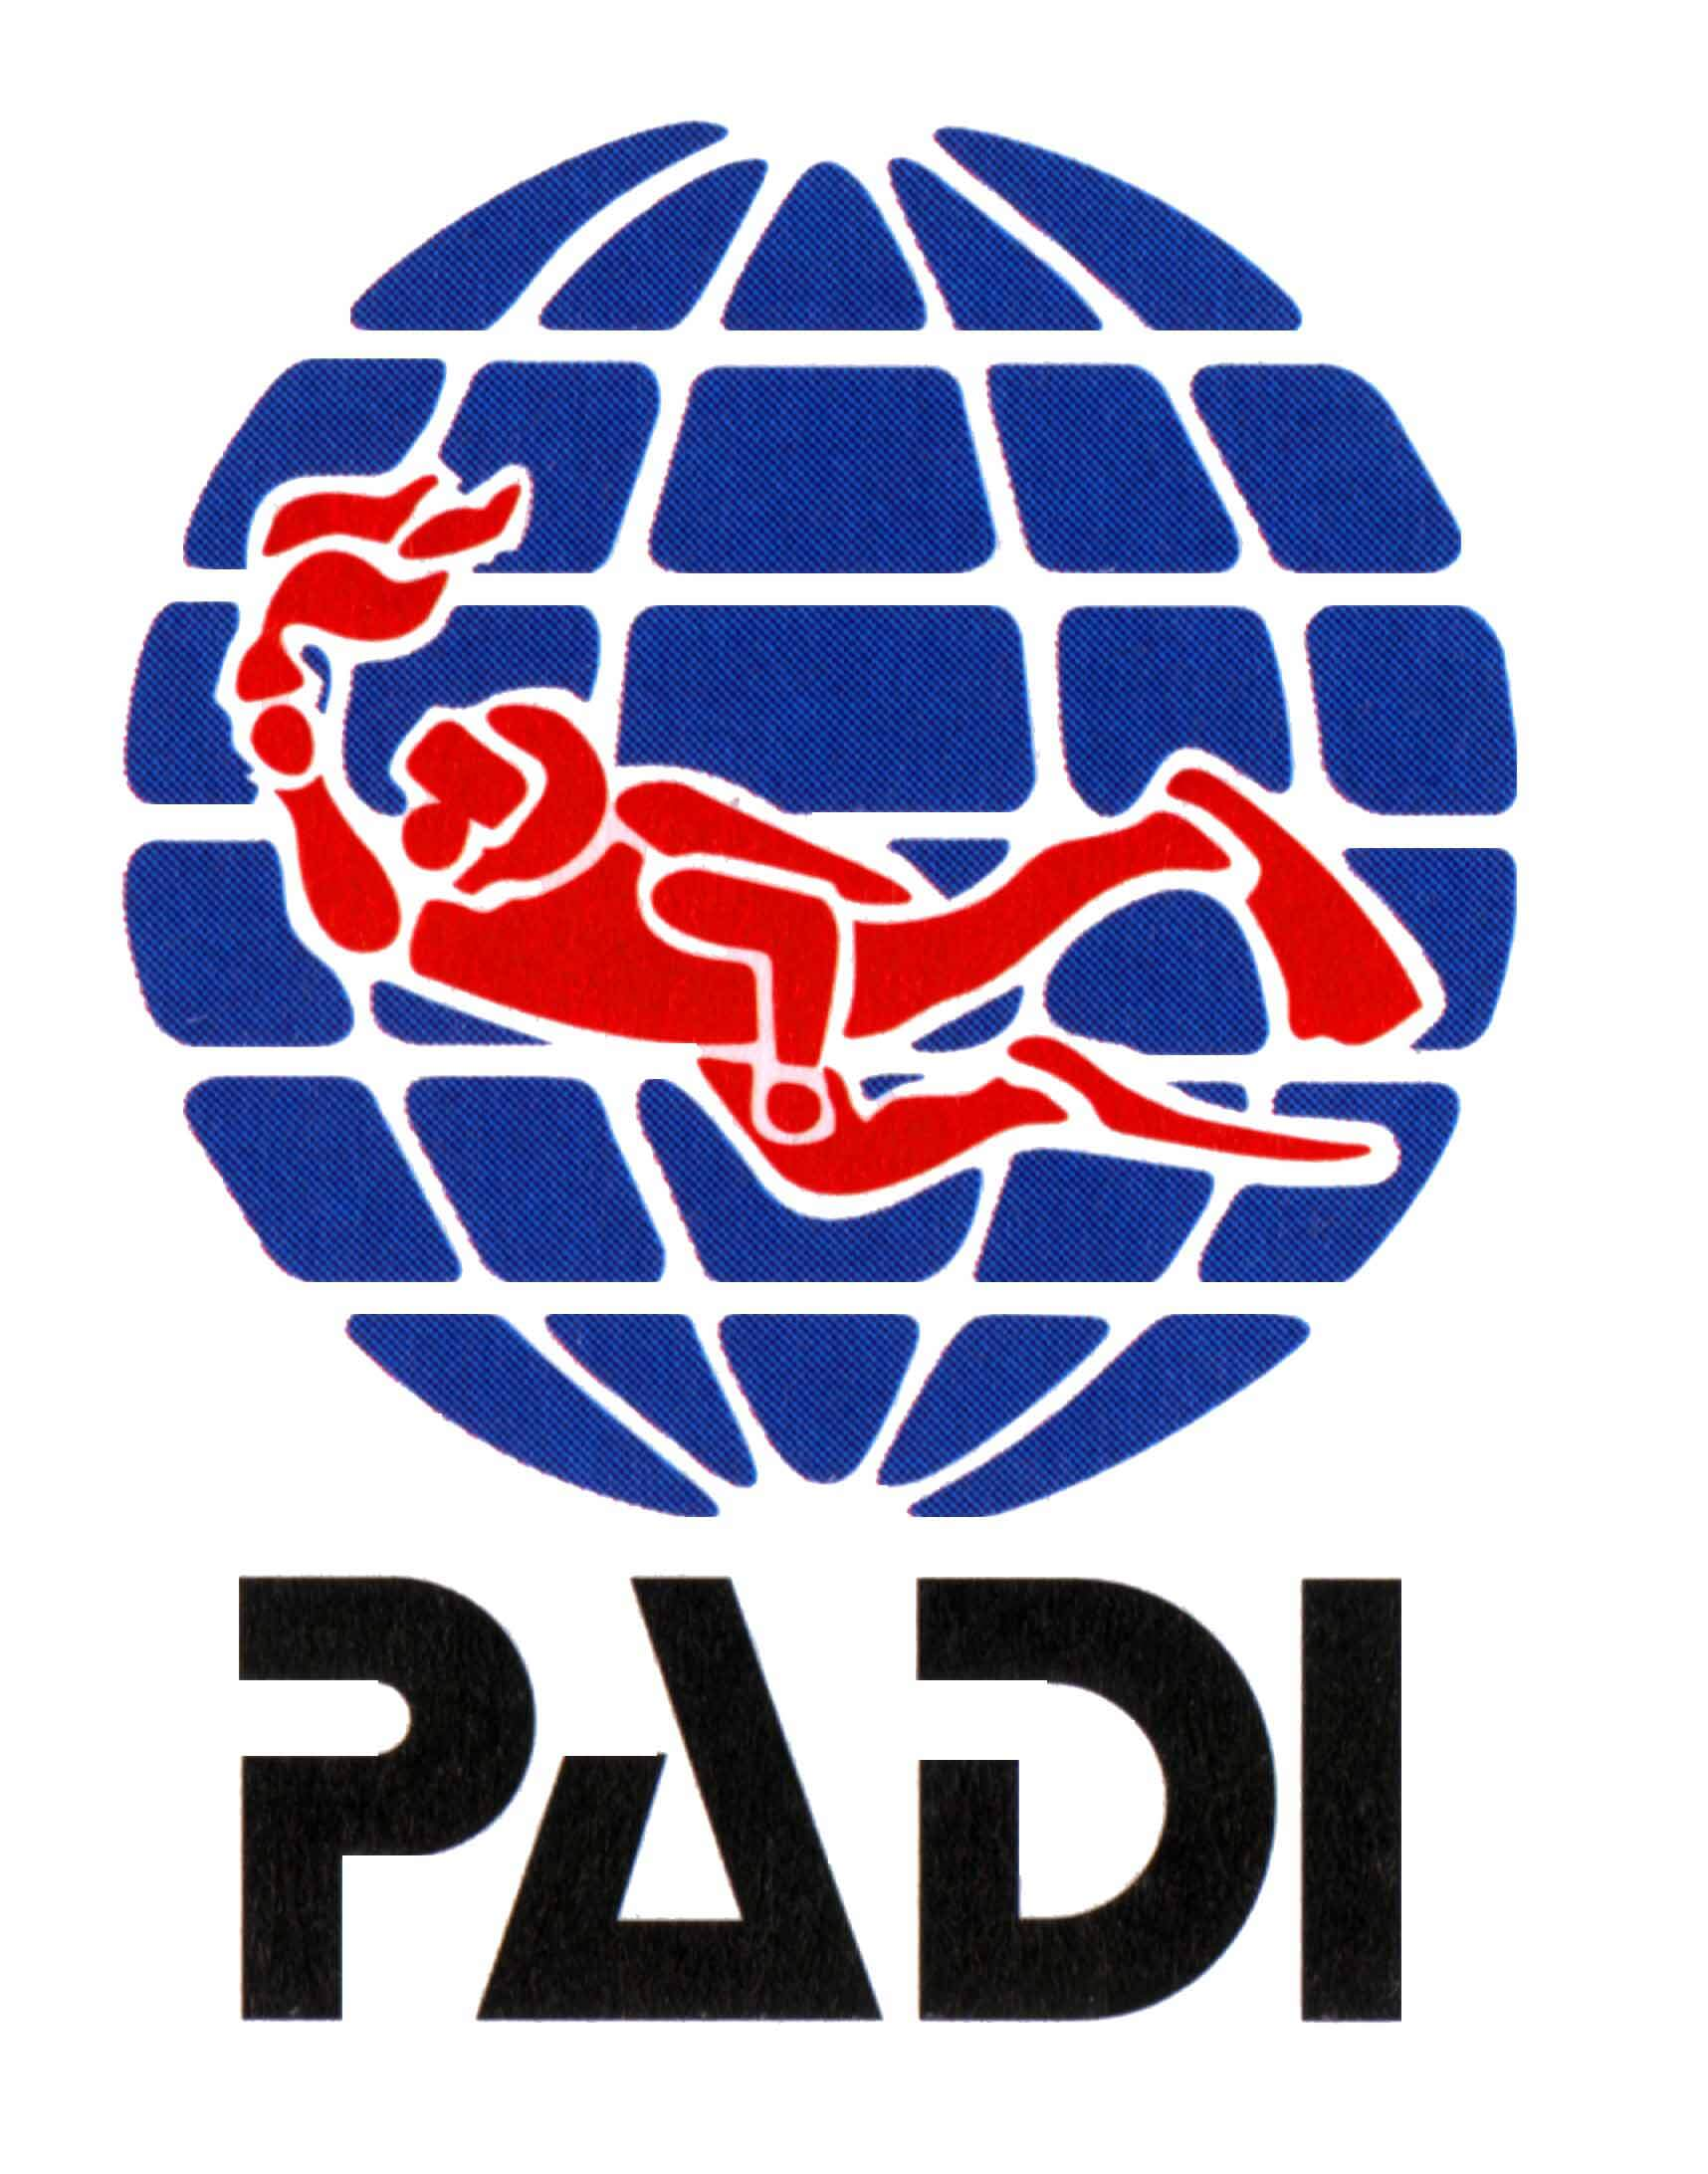 scuba certification padi diving dive diver hawaii course courses rescue lessons open water certified logos honolulu requirement lesson star buoyancy